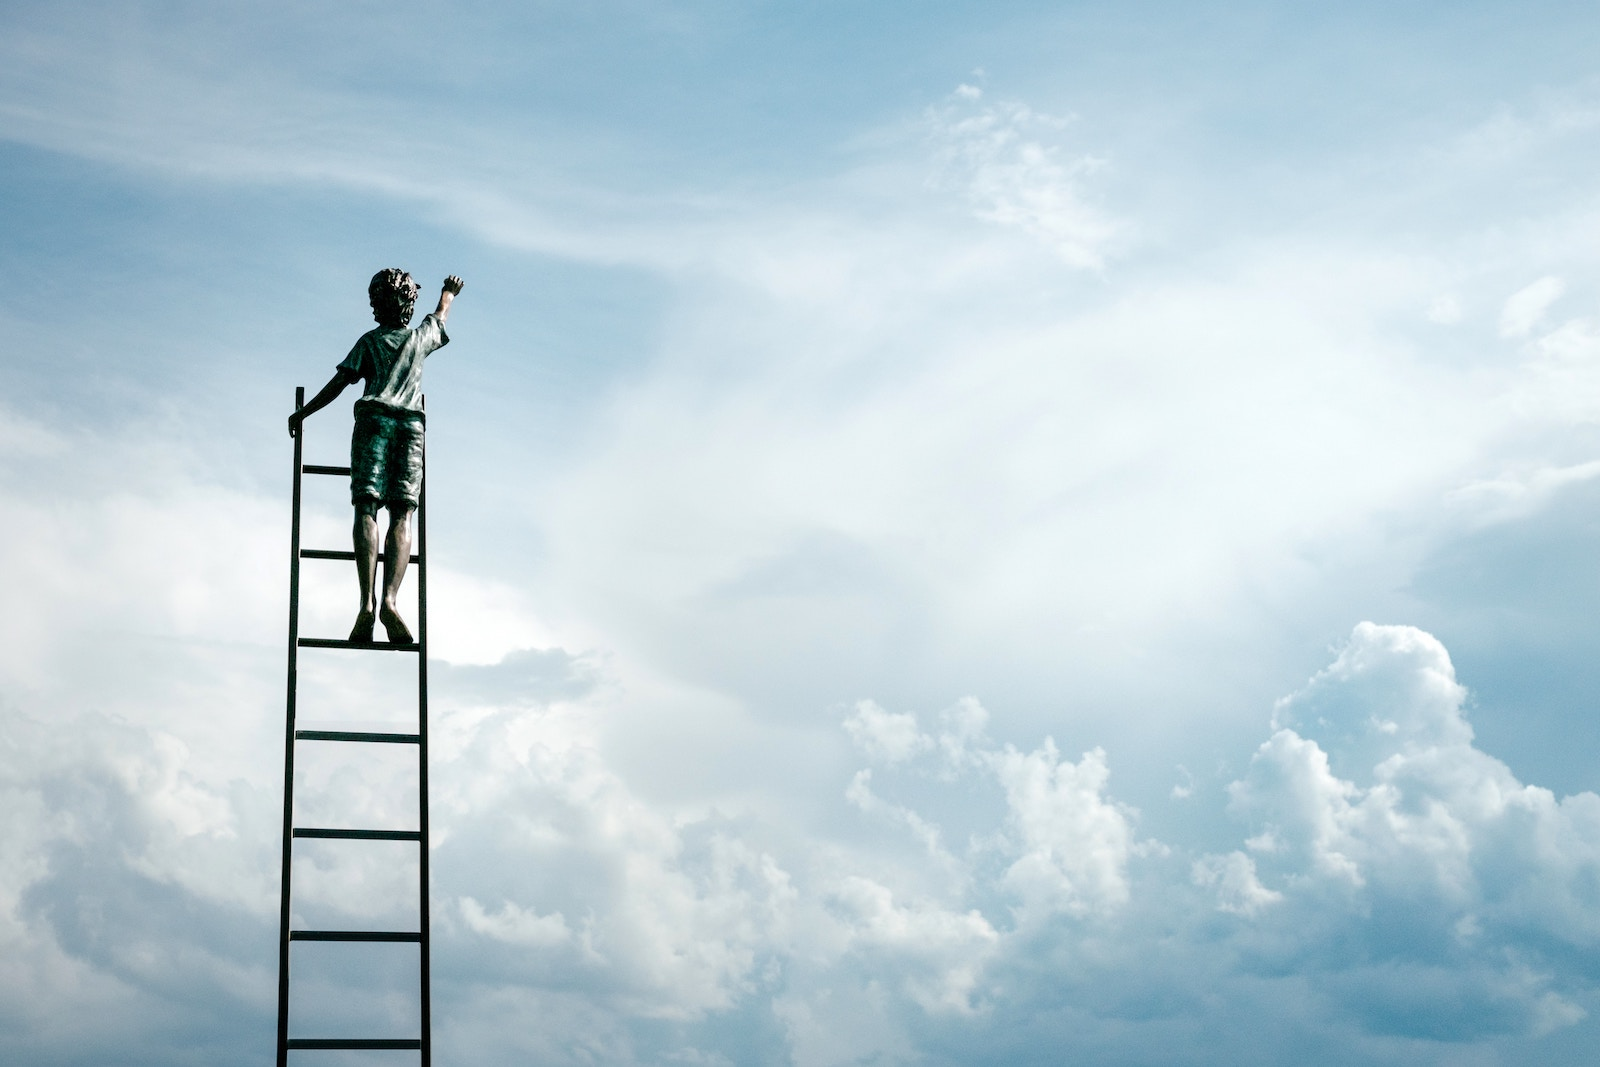 Step up the career ladder with an ILM course and you'll never look back – a guide for employees